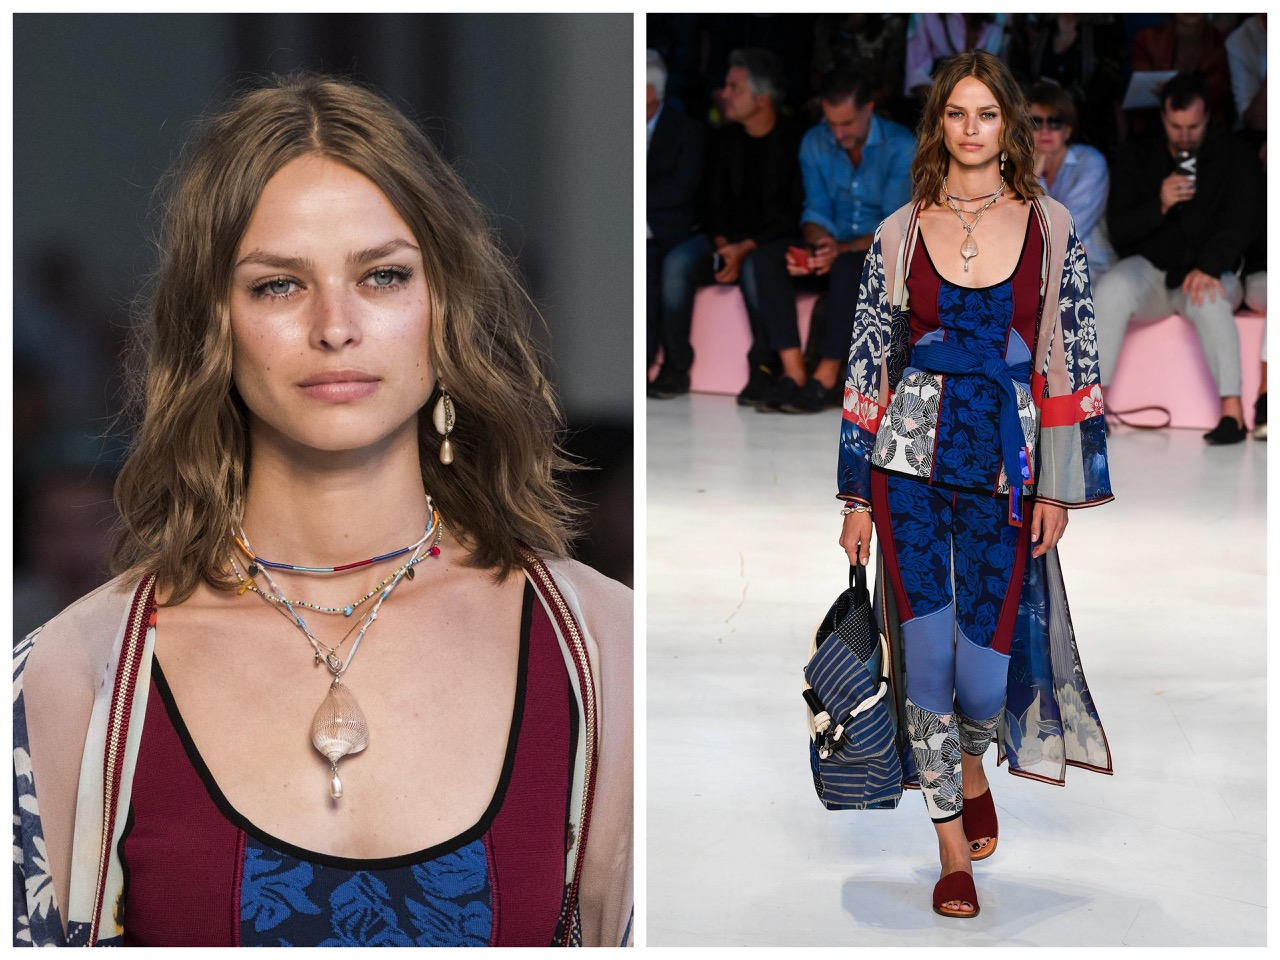 metro,summer,printemps été, 2019,mode,fashion,milan,MFW,maille,pacific zen,hawaii,japon,tropical,prints,paillé,cachemire,bijoux,coquillages,selles,jewels